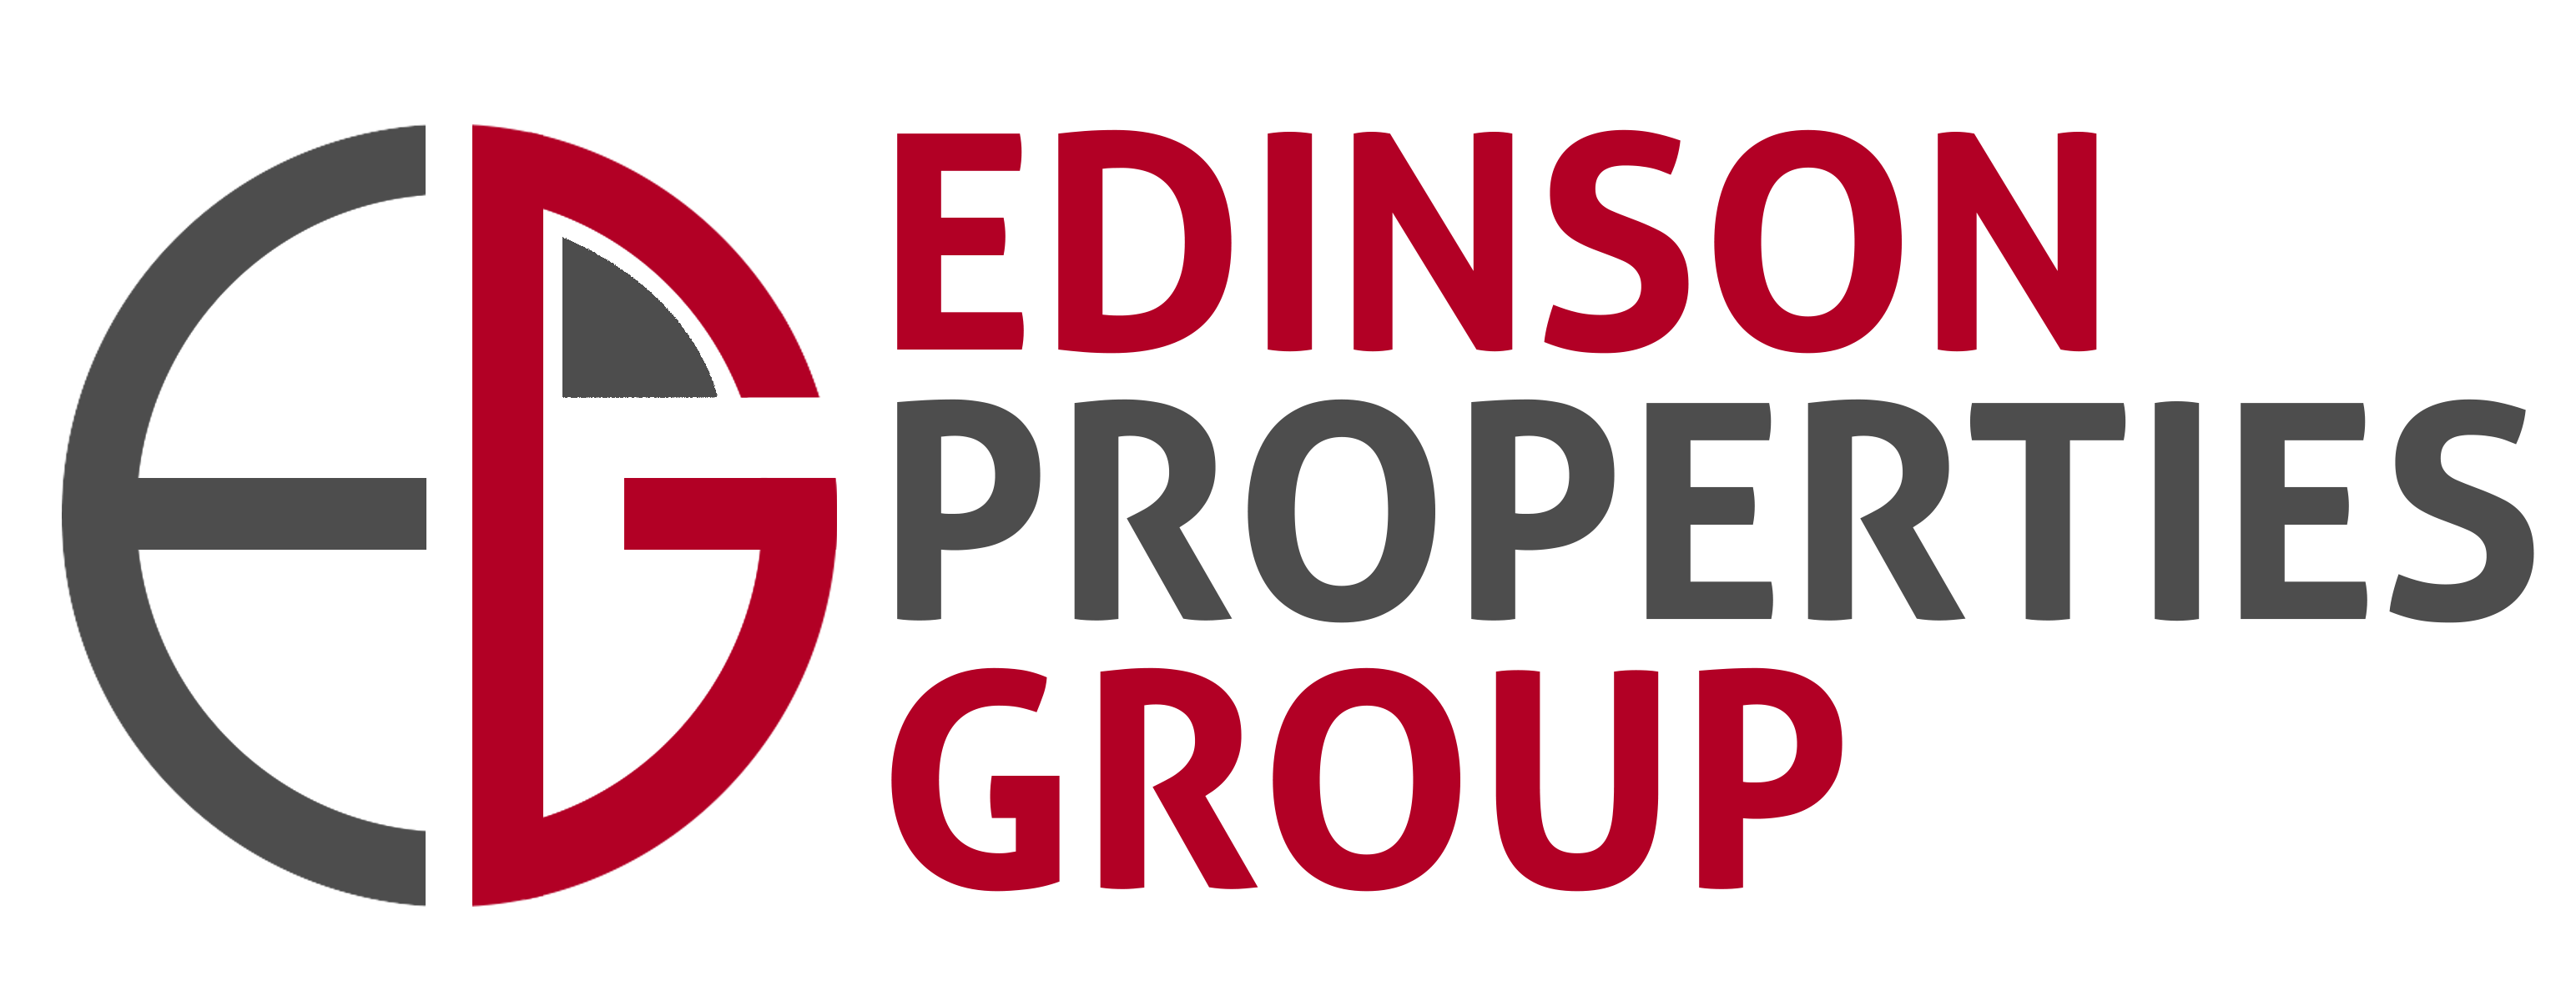 Edinson Properties Group logo